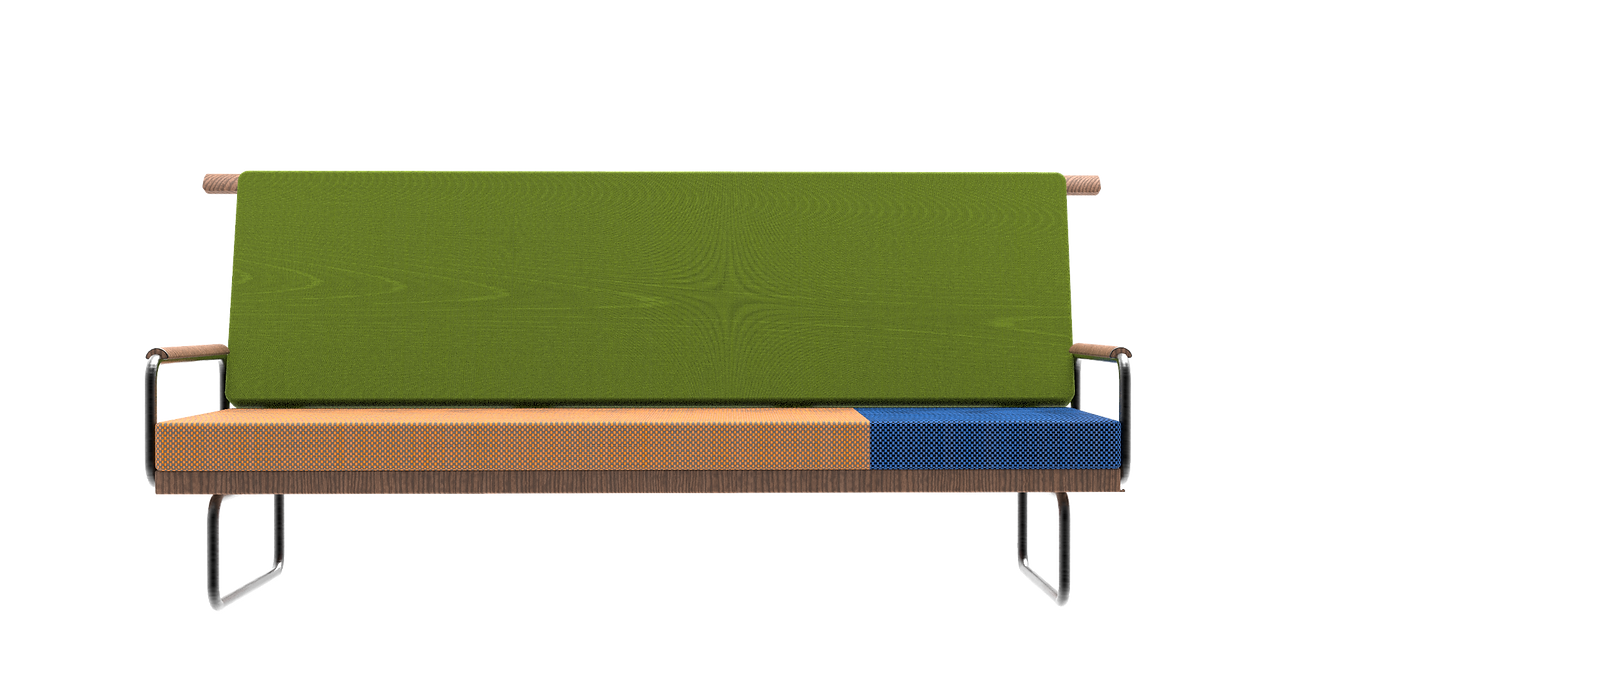 Mini_Envelope Couch.111.png